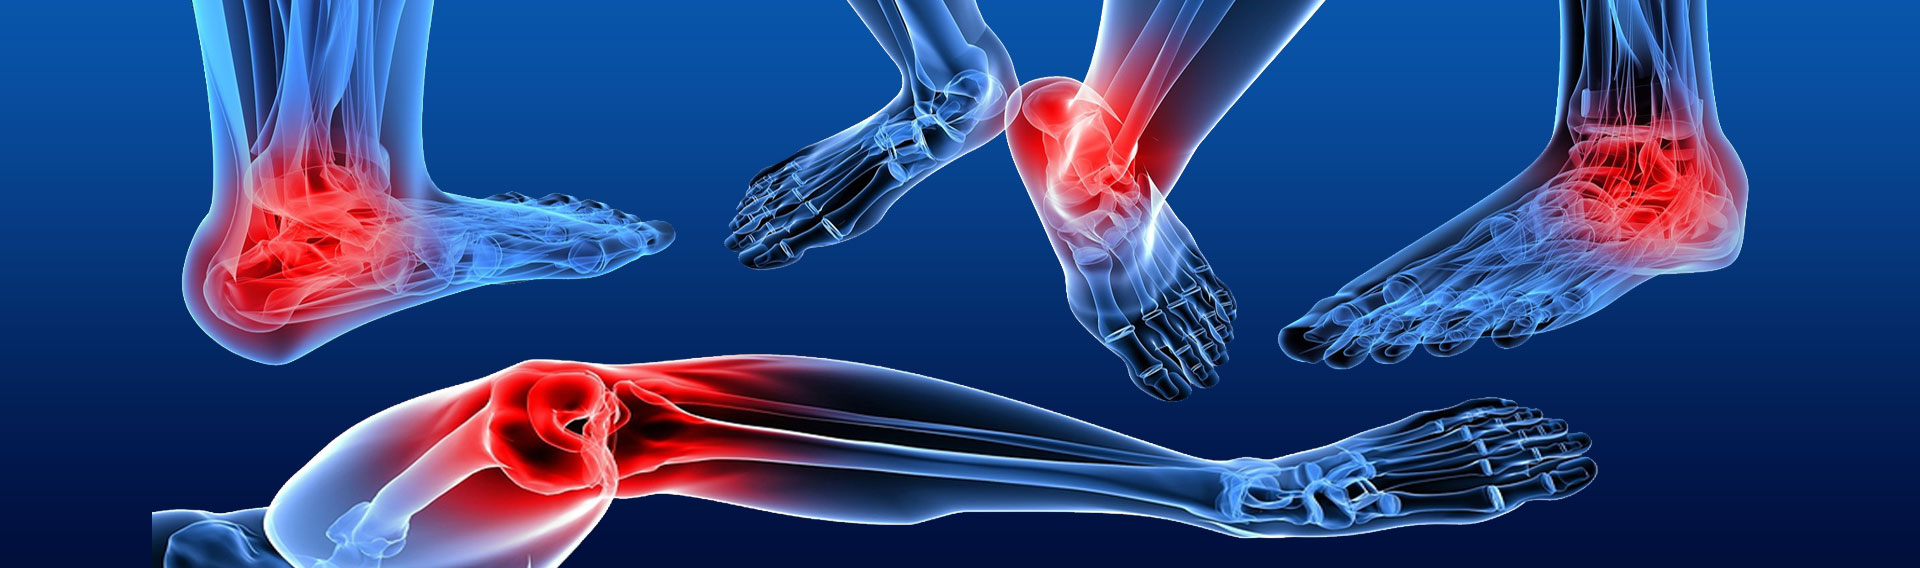 best orthopedic hospitla in jaipur